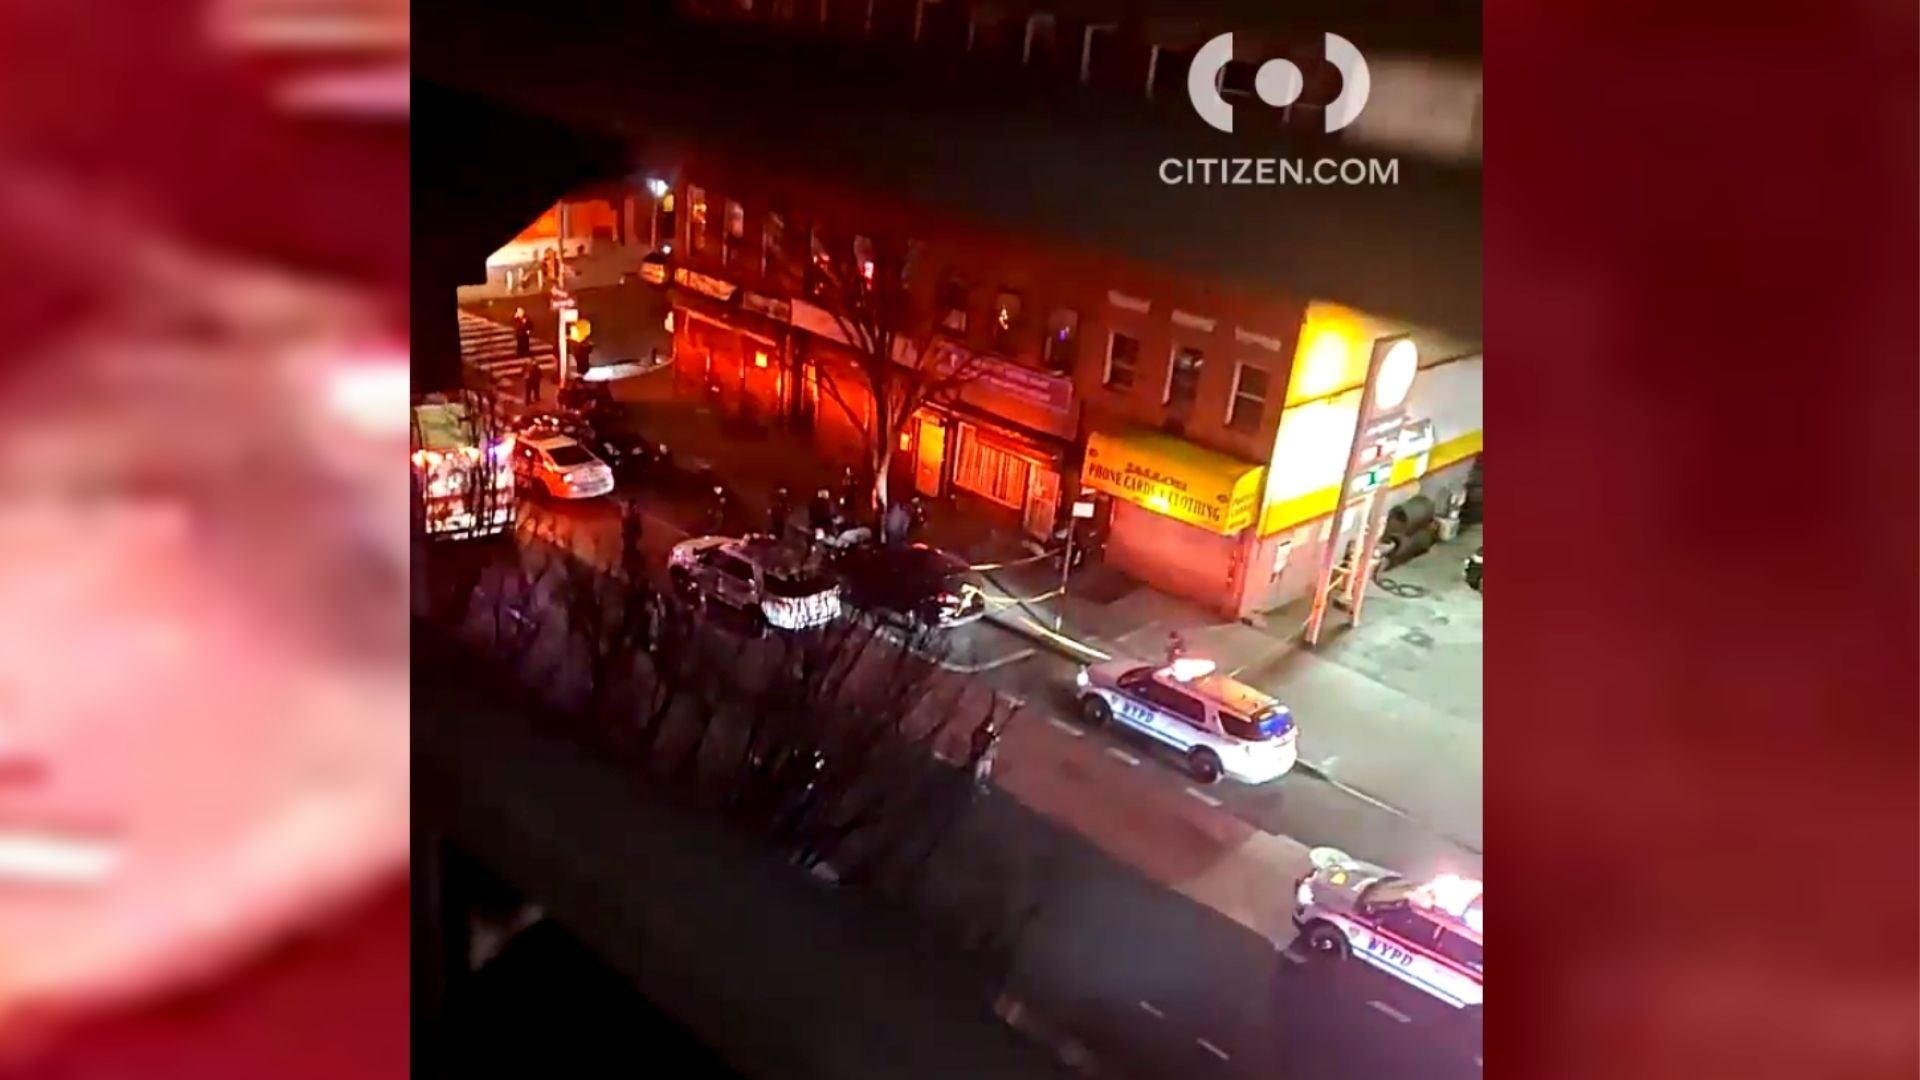 Police on the scene of a fatal East Harlem shooting near East 118th Street and First Avenue that sparked a police pursuit through Manhattan after two men fled the scene, according to the NYPD.